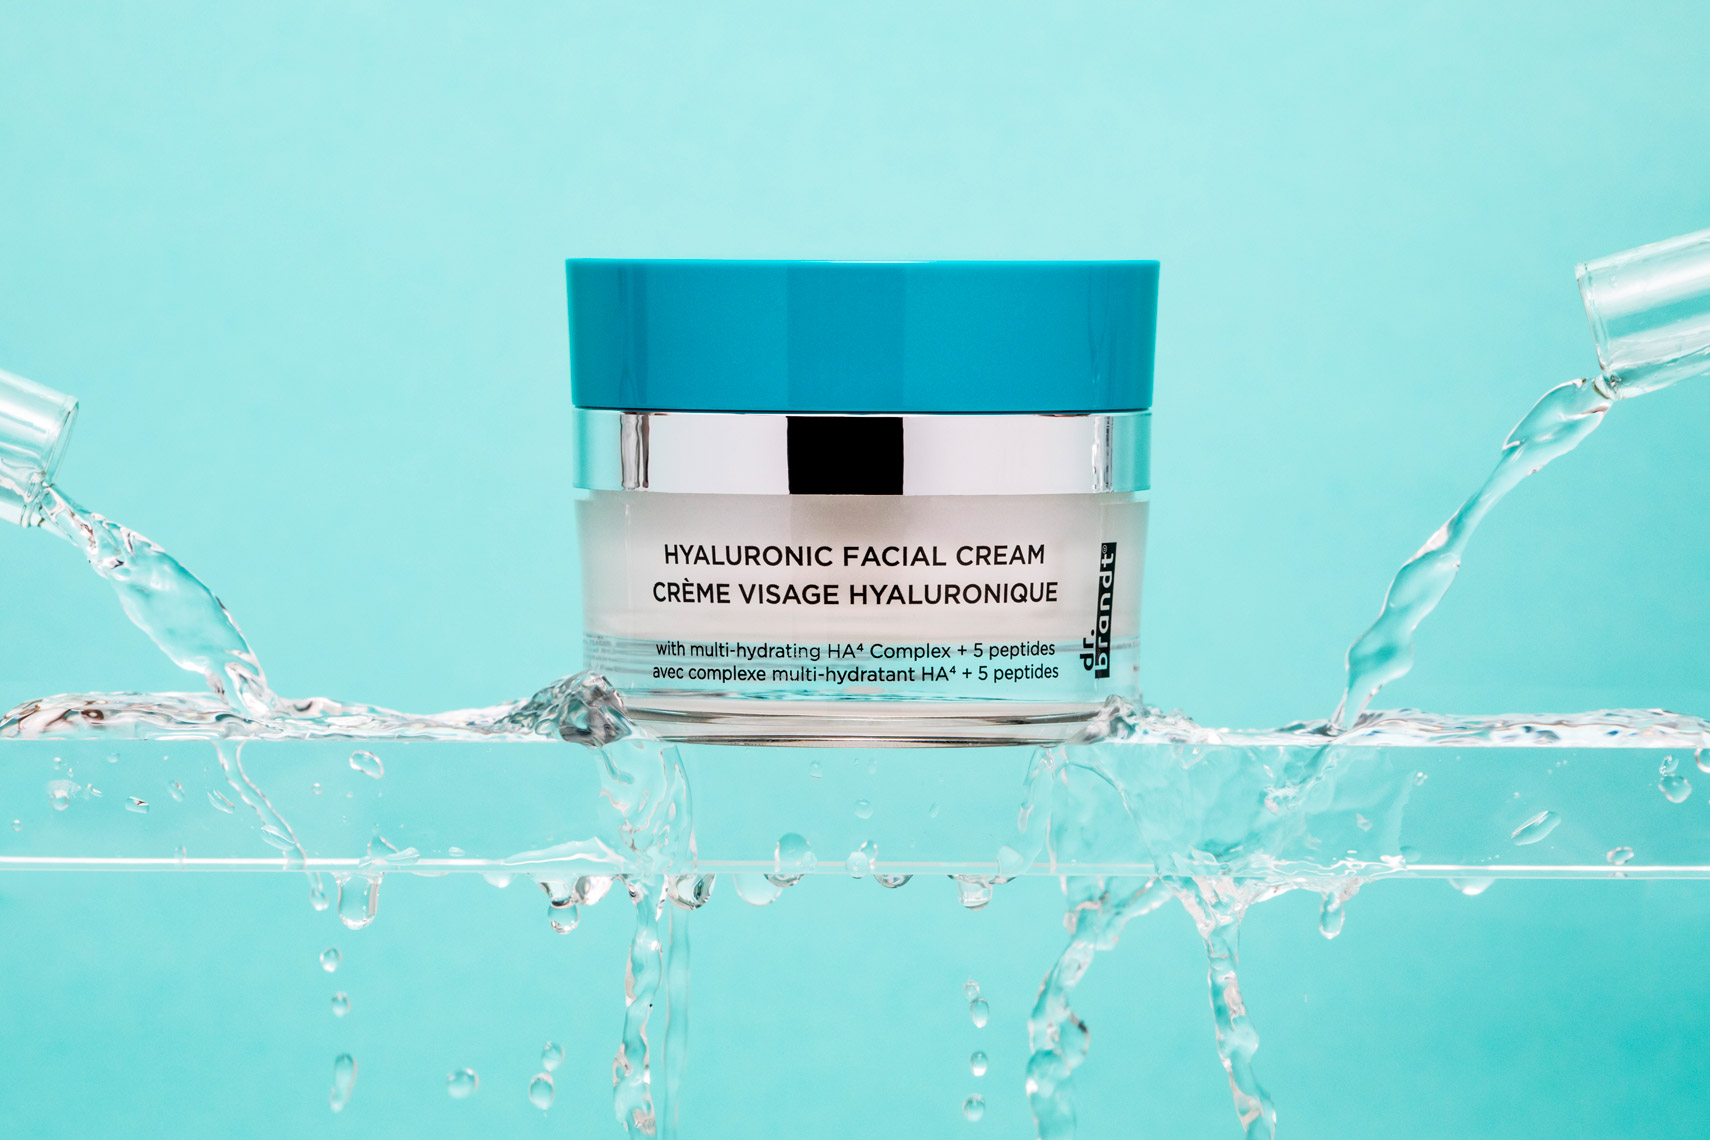 Dr. Brandt, Hyaluronic Cream, Hyaluronic Acid, Skincare, Skincare Photography, Product Photography, Makeup, Cosmetics, Makeup Photography, Cosmetic Photography, Creative Still, Jewelry, fashion jewelry, jewelry photography, product photography, product photo, studio photography, Ian Jacob, Ian Jacob Photography